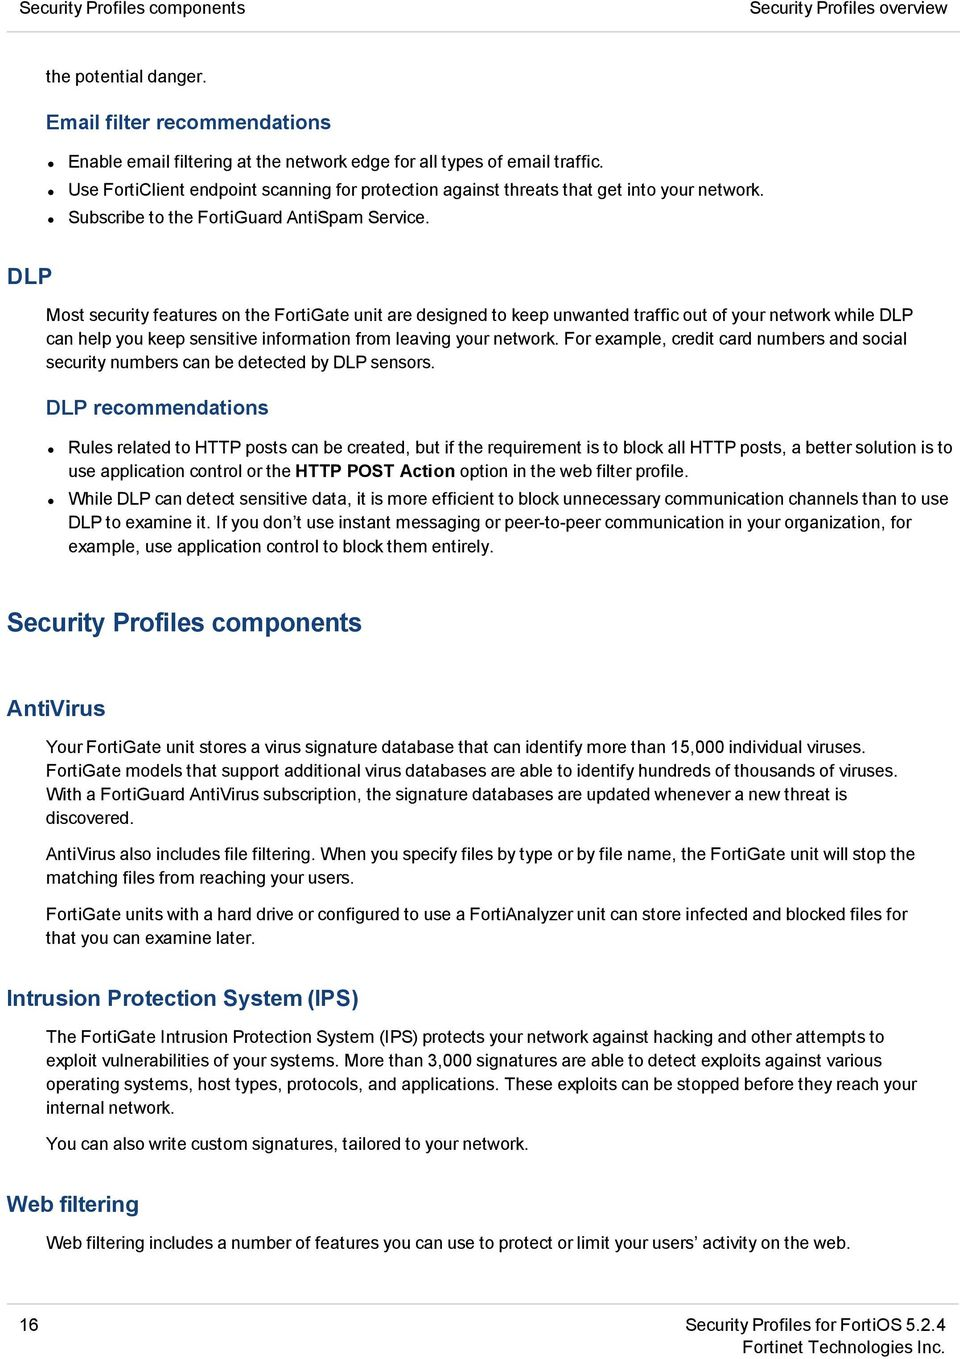 FortiOS Handbook - Security Profiles VERSION PDF